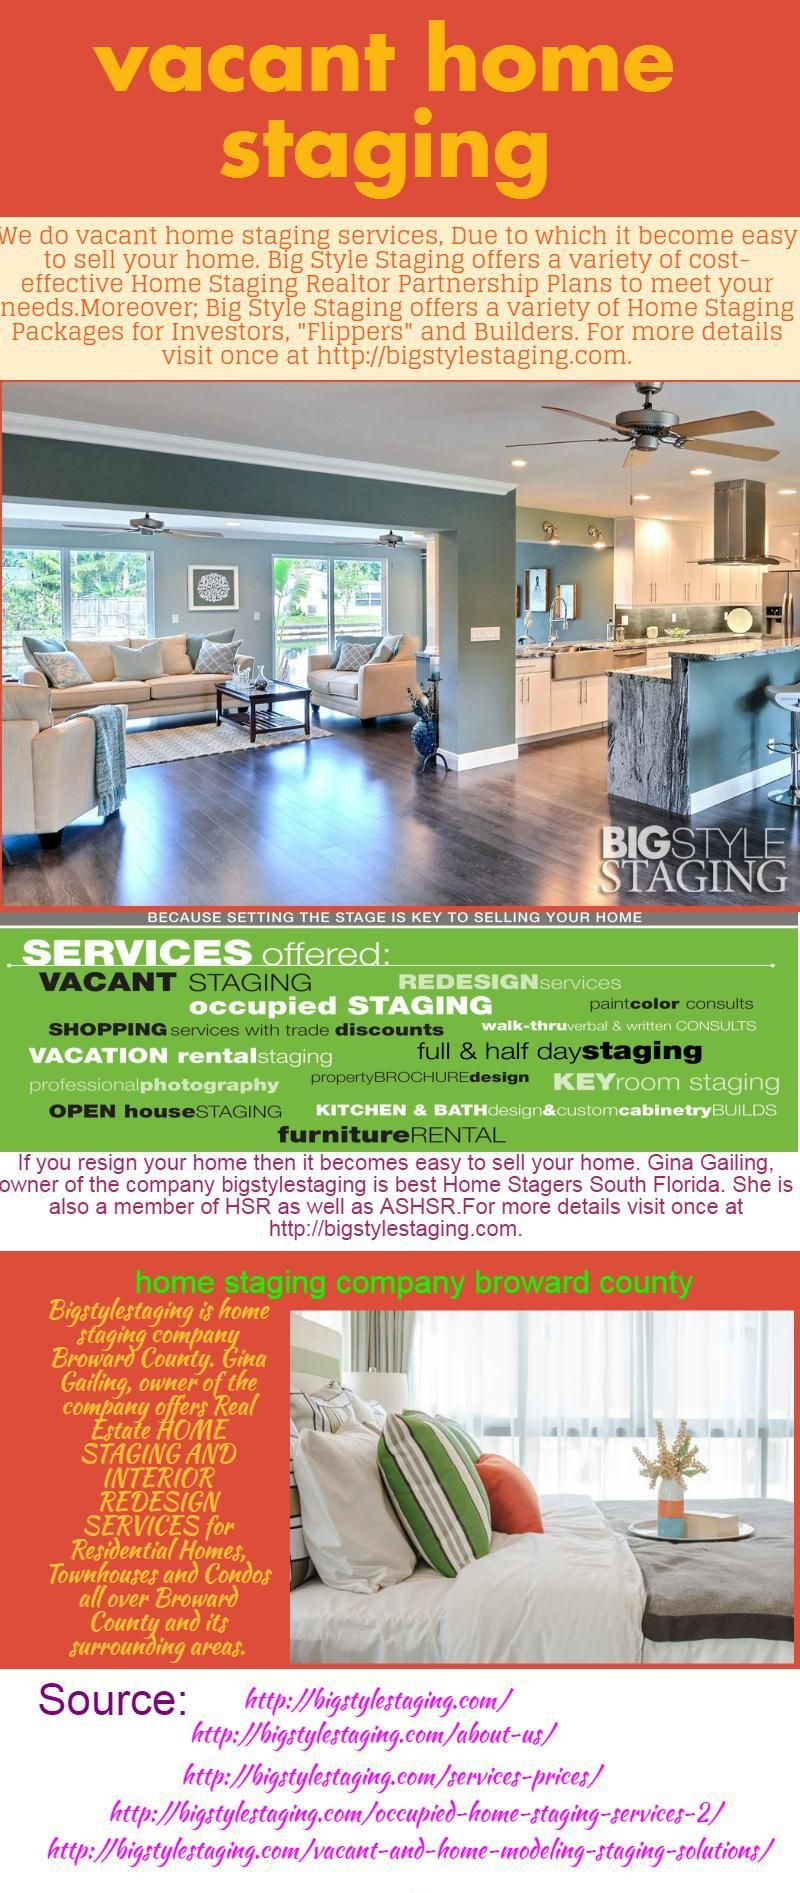 orig after redesign interior services